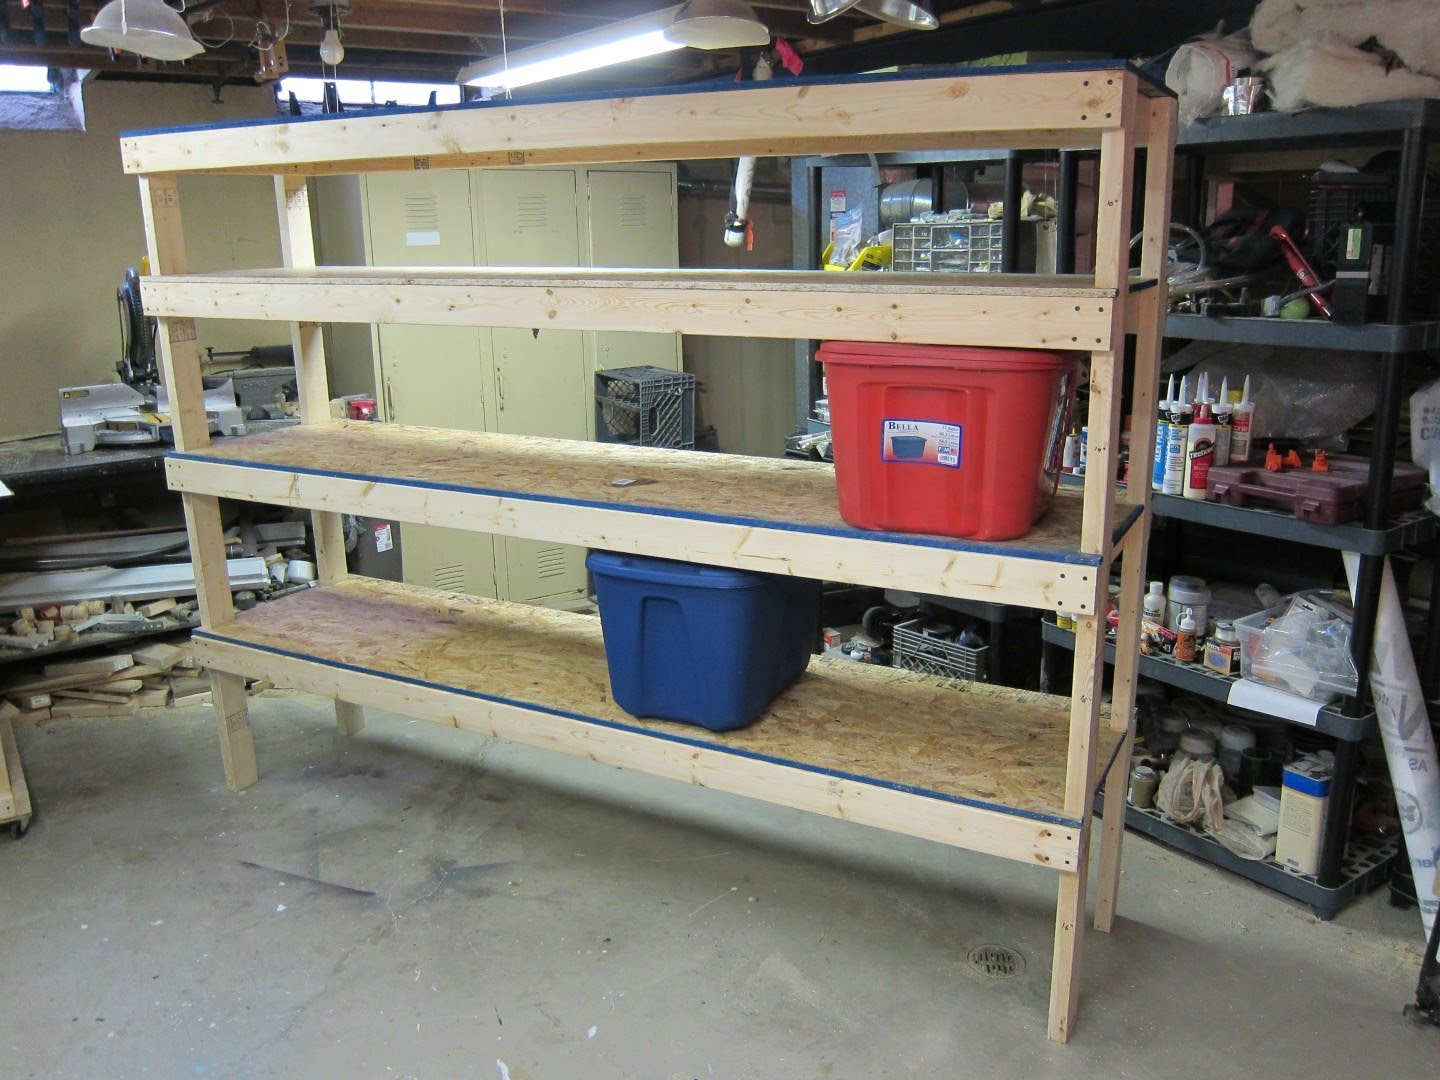 20 diy garage shelving ideas guide patterns garage storage shelves diy